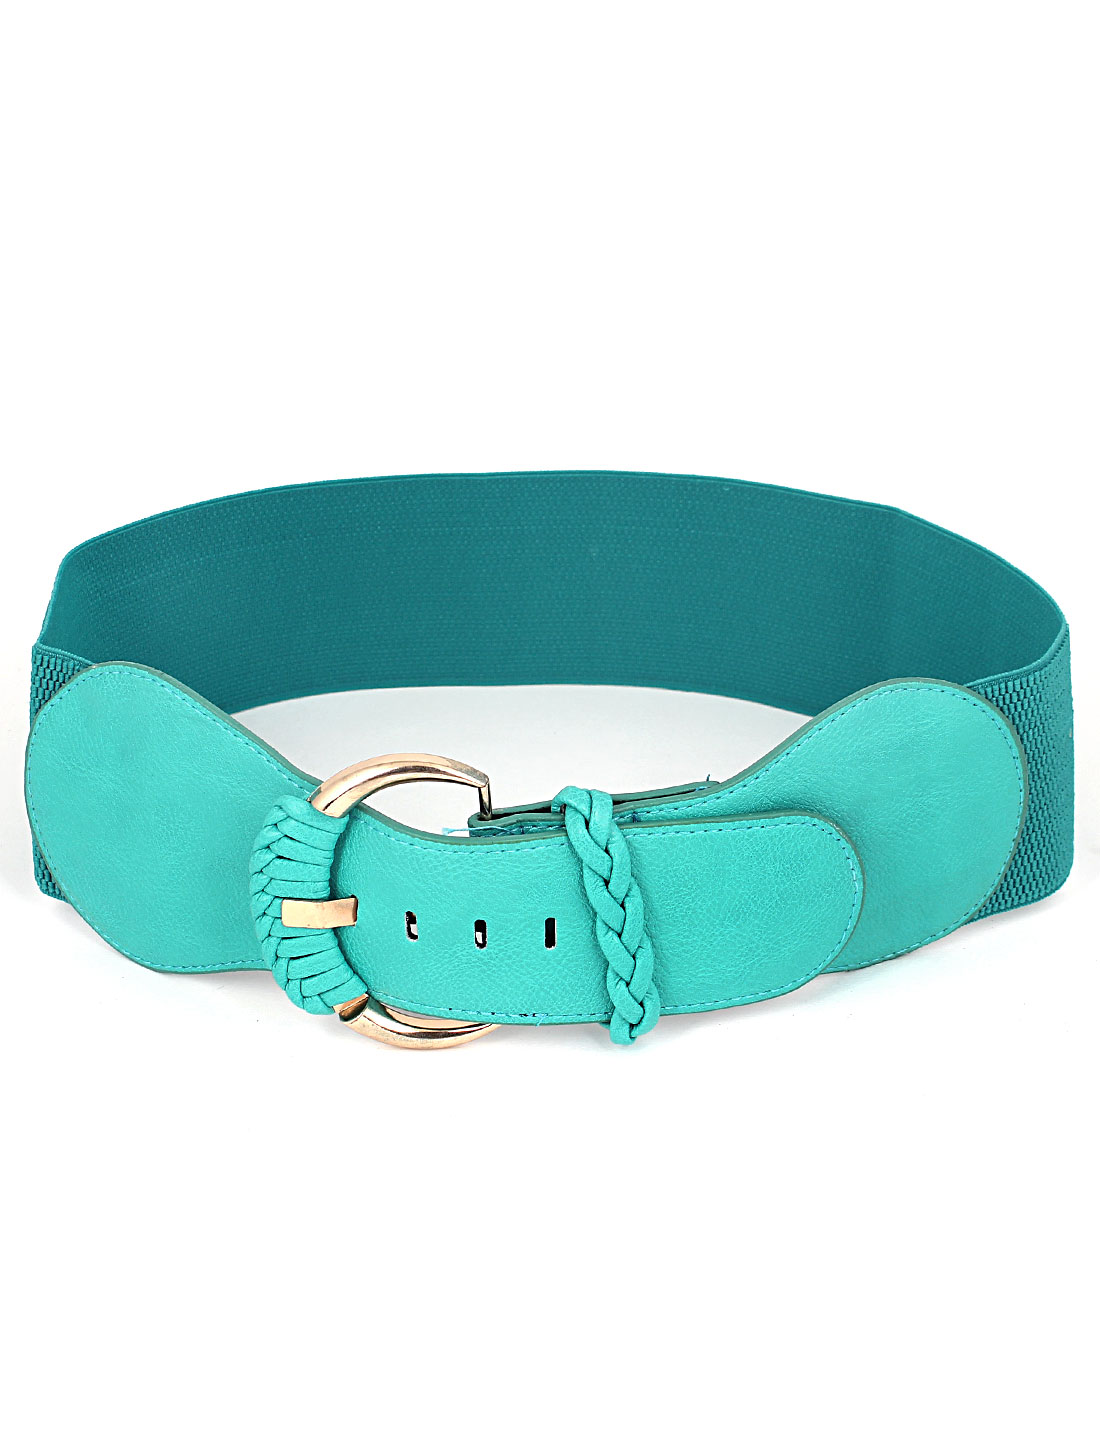 Women Metal Single Pin Buckle 7.5cm Wide Faux Leather Elastic Adjustable 5 Holes Waist Belt Cyan